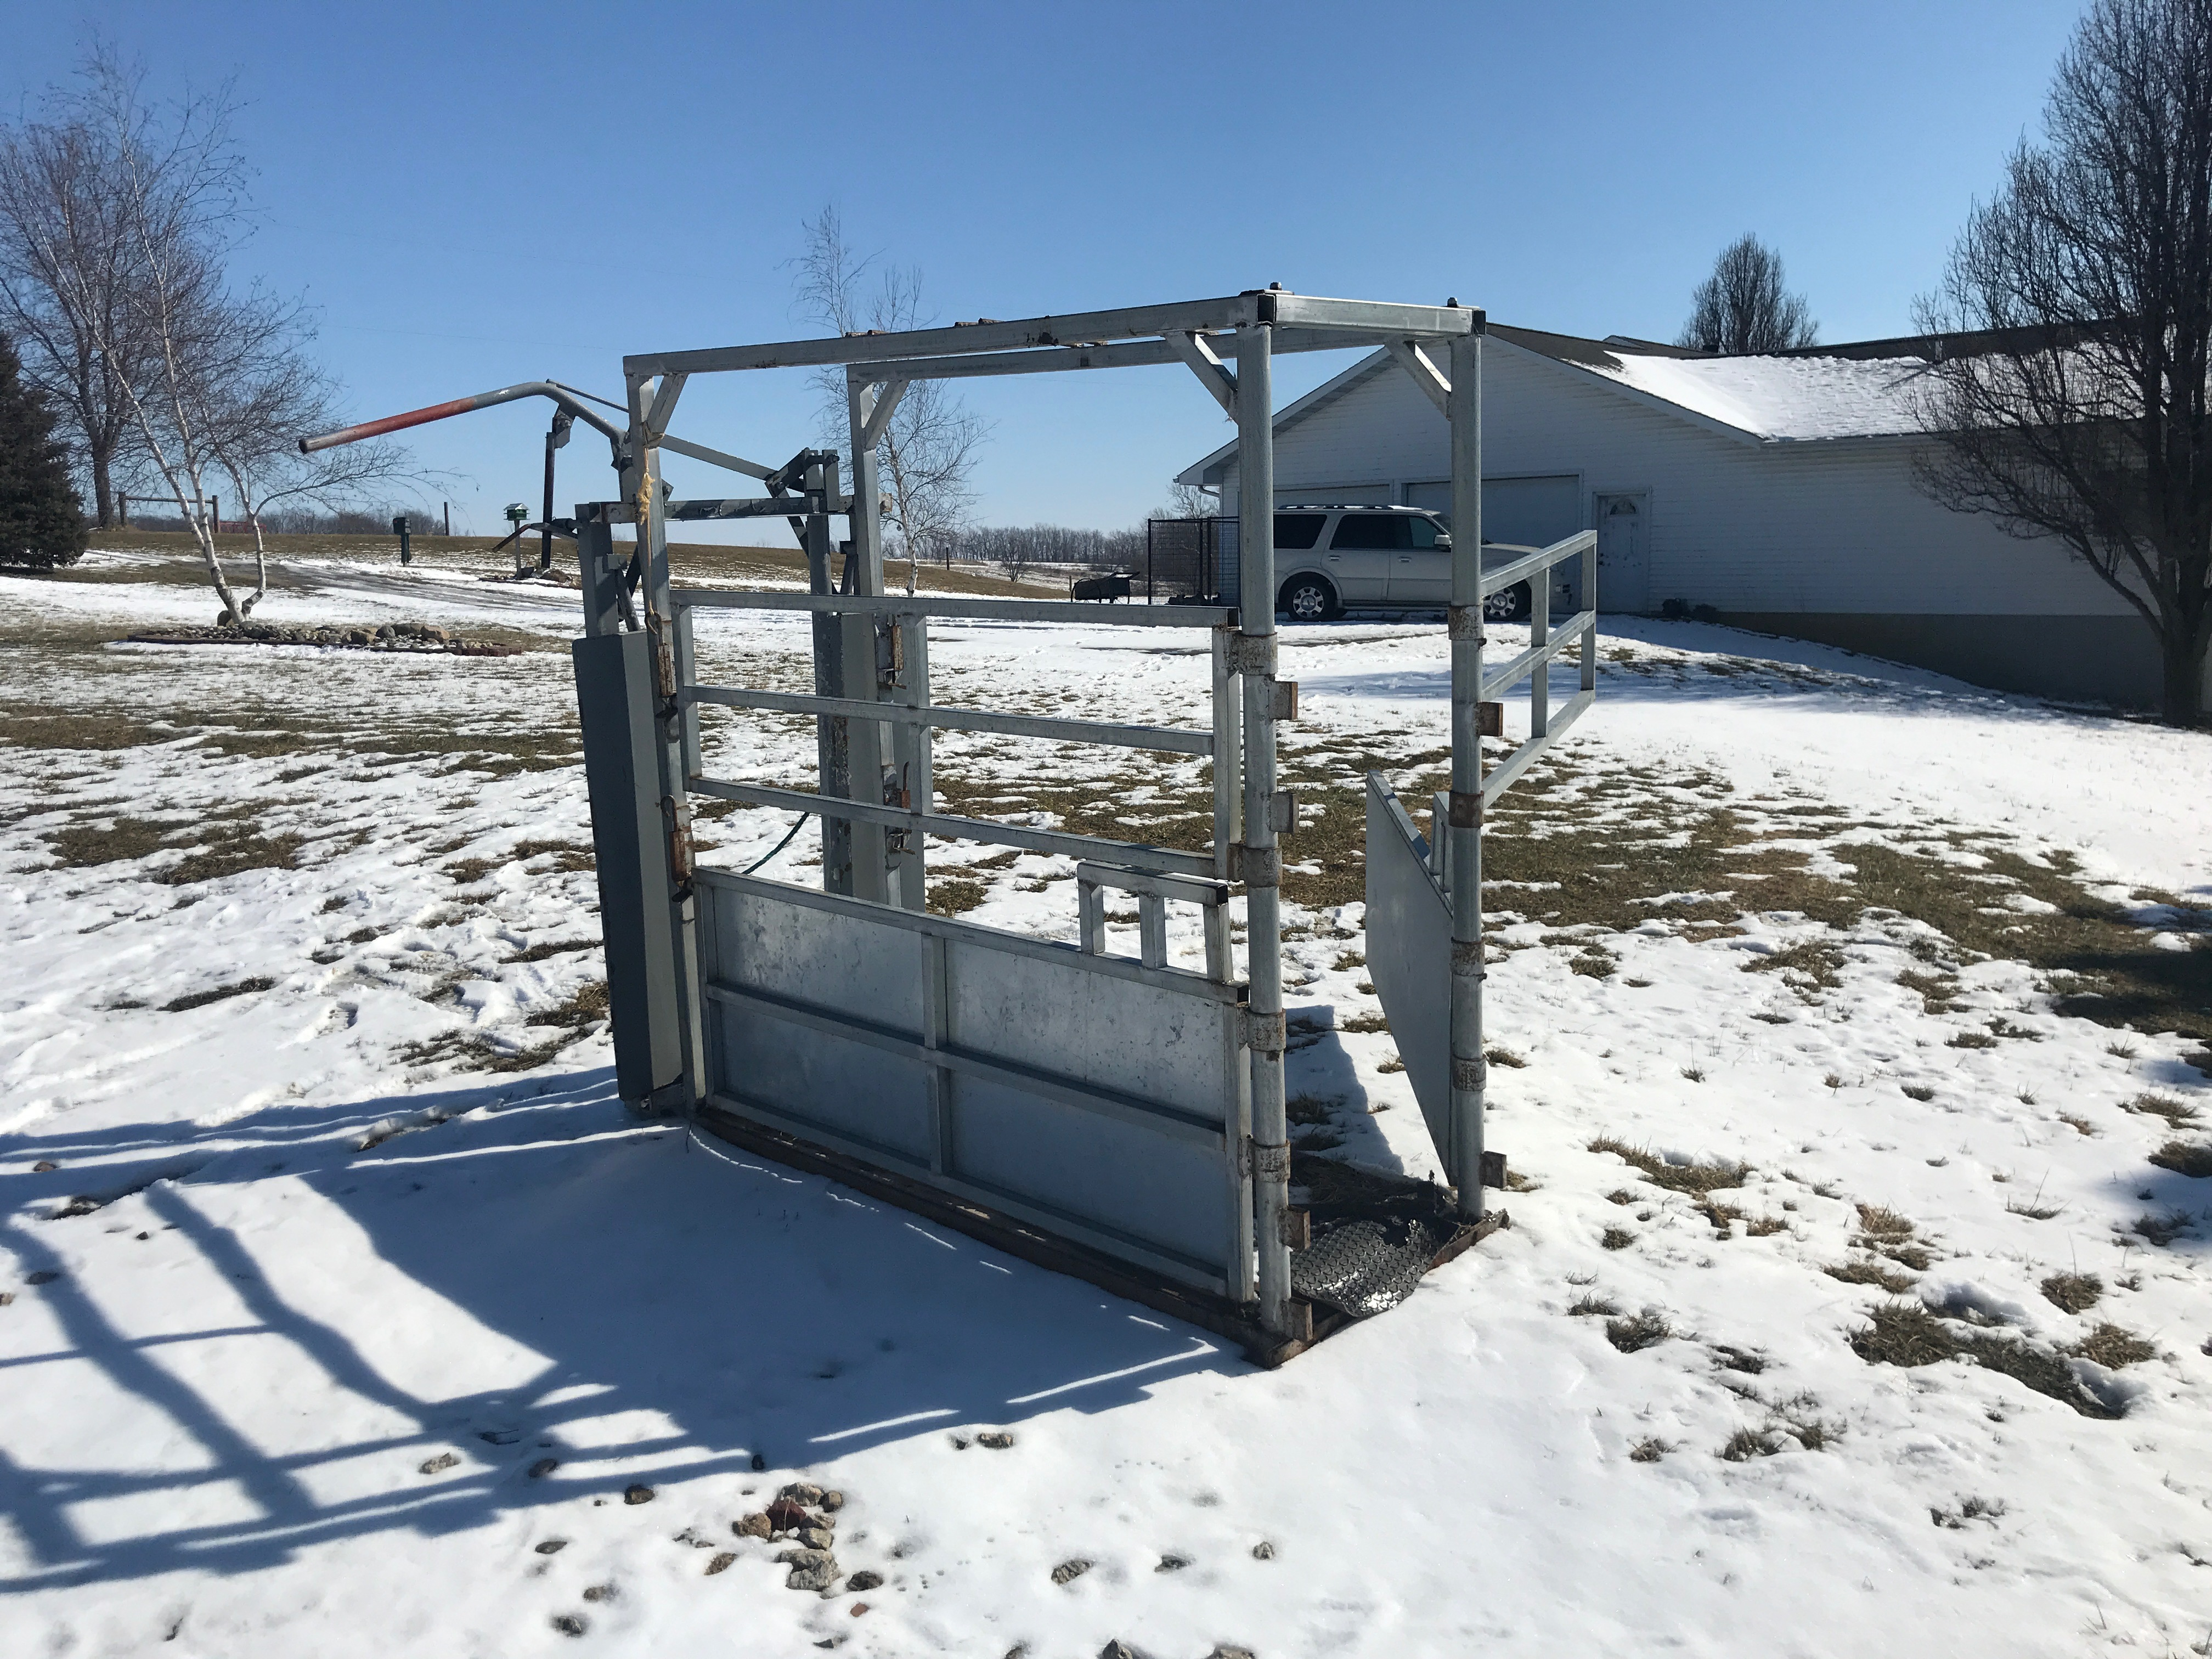 River Rode Cattle Chute, Manual Catch, Double Side Door, Wood Floor, (NICE CONDITION) - Image 2 of 4